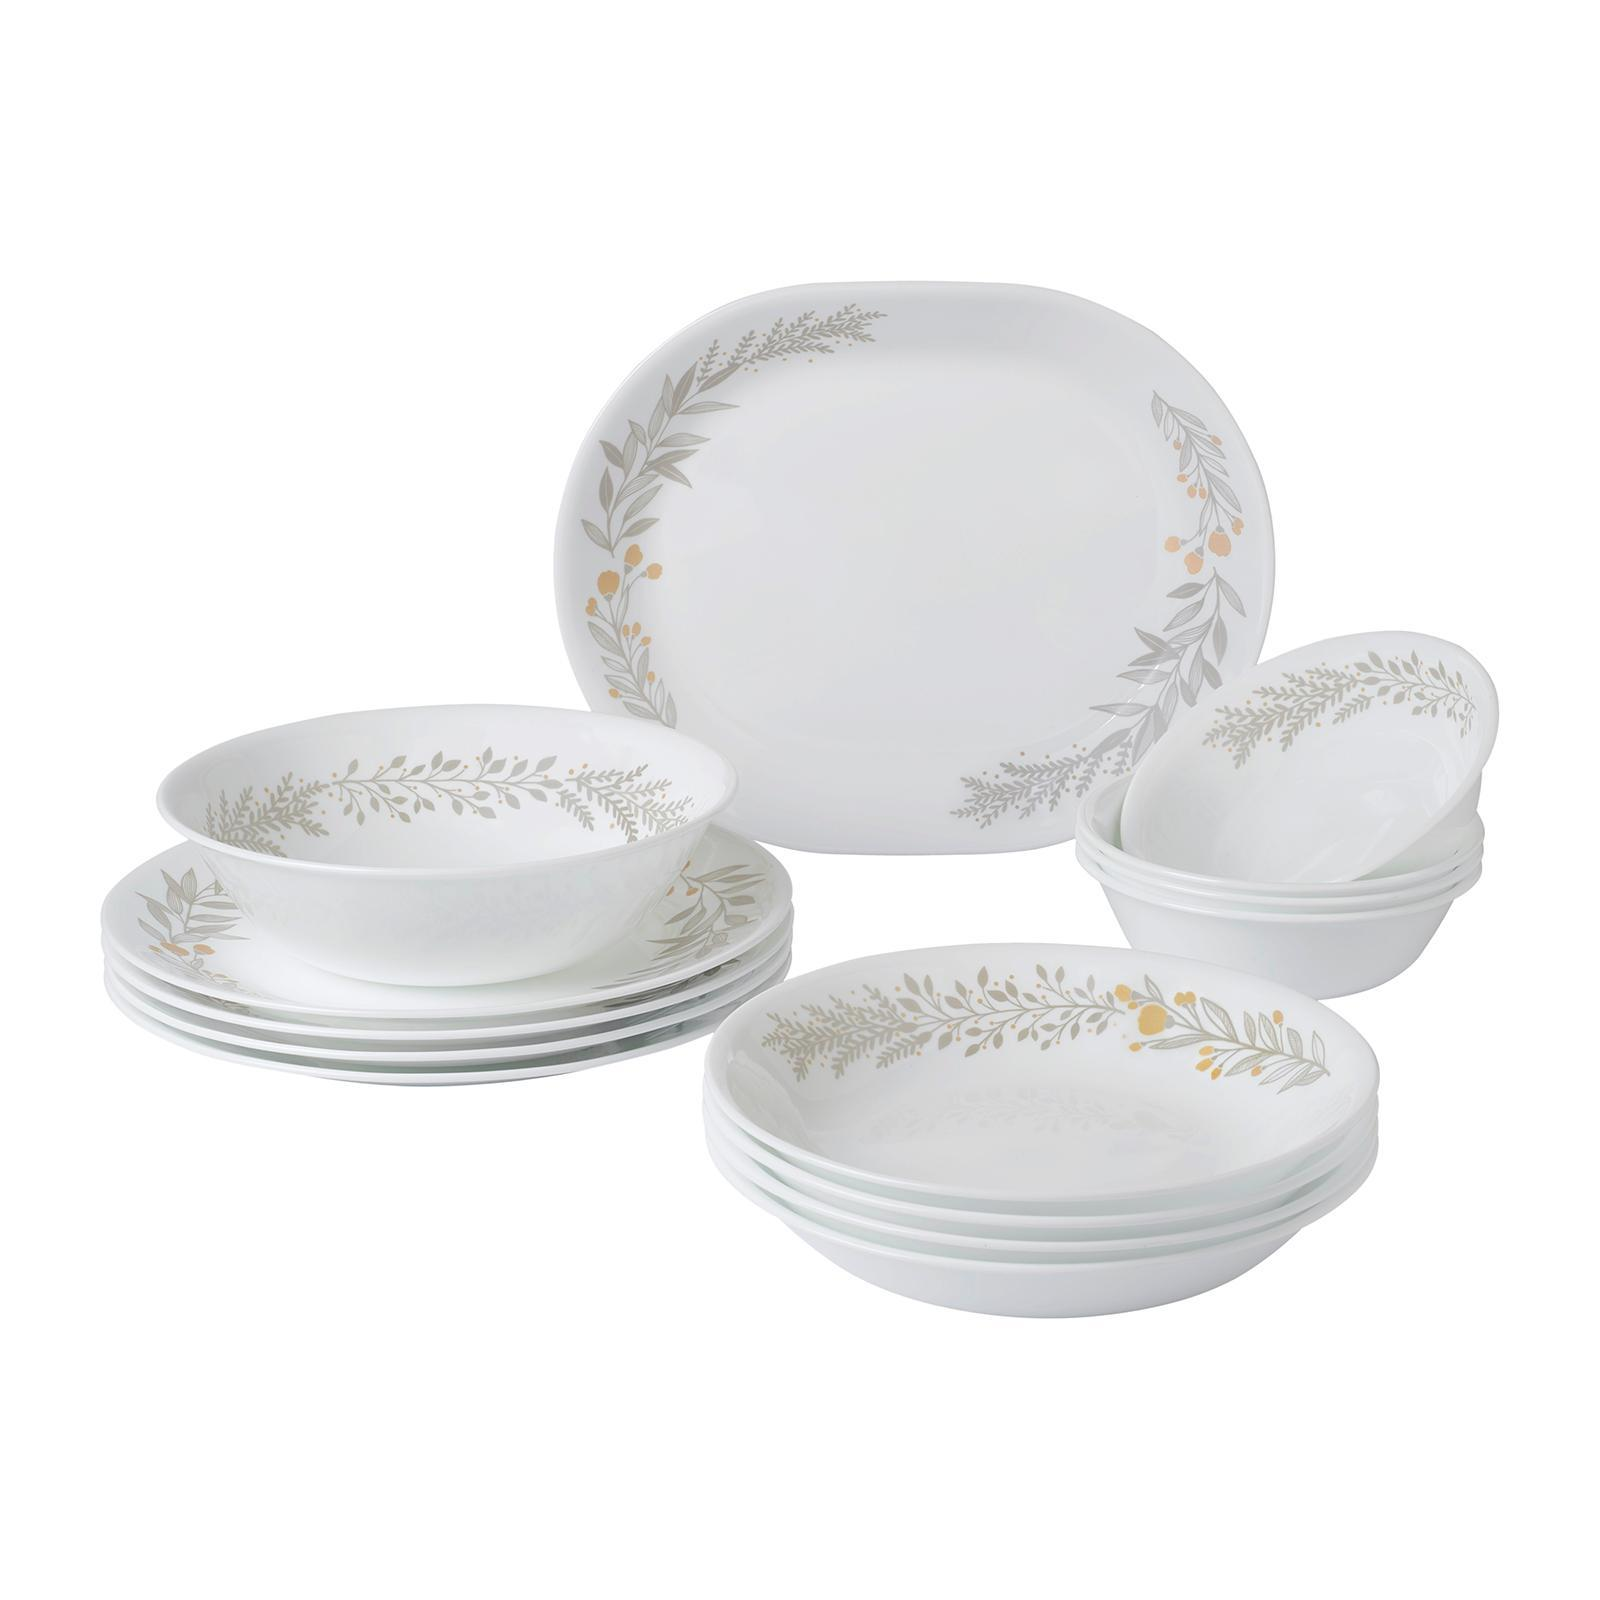 Corelle 14 PCS Dinner Set (Design: Silver Crown)